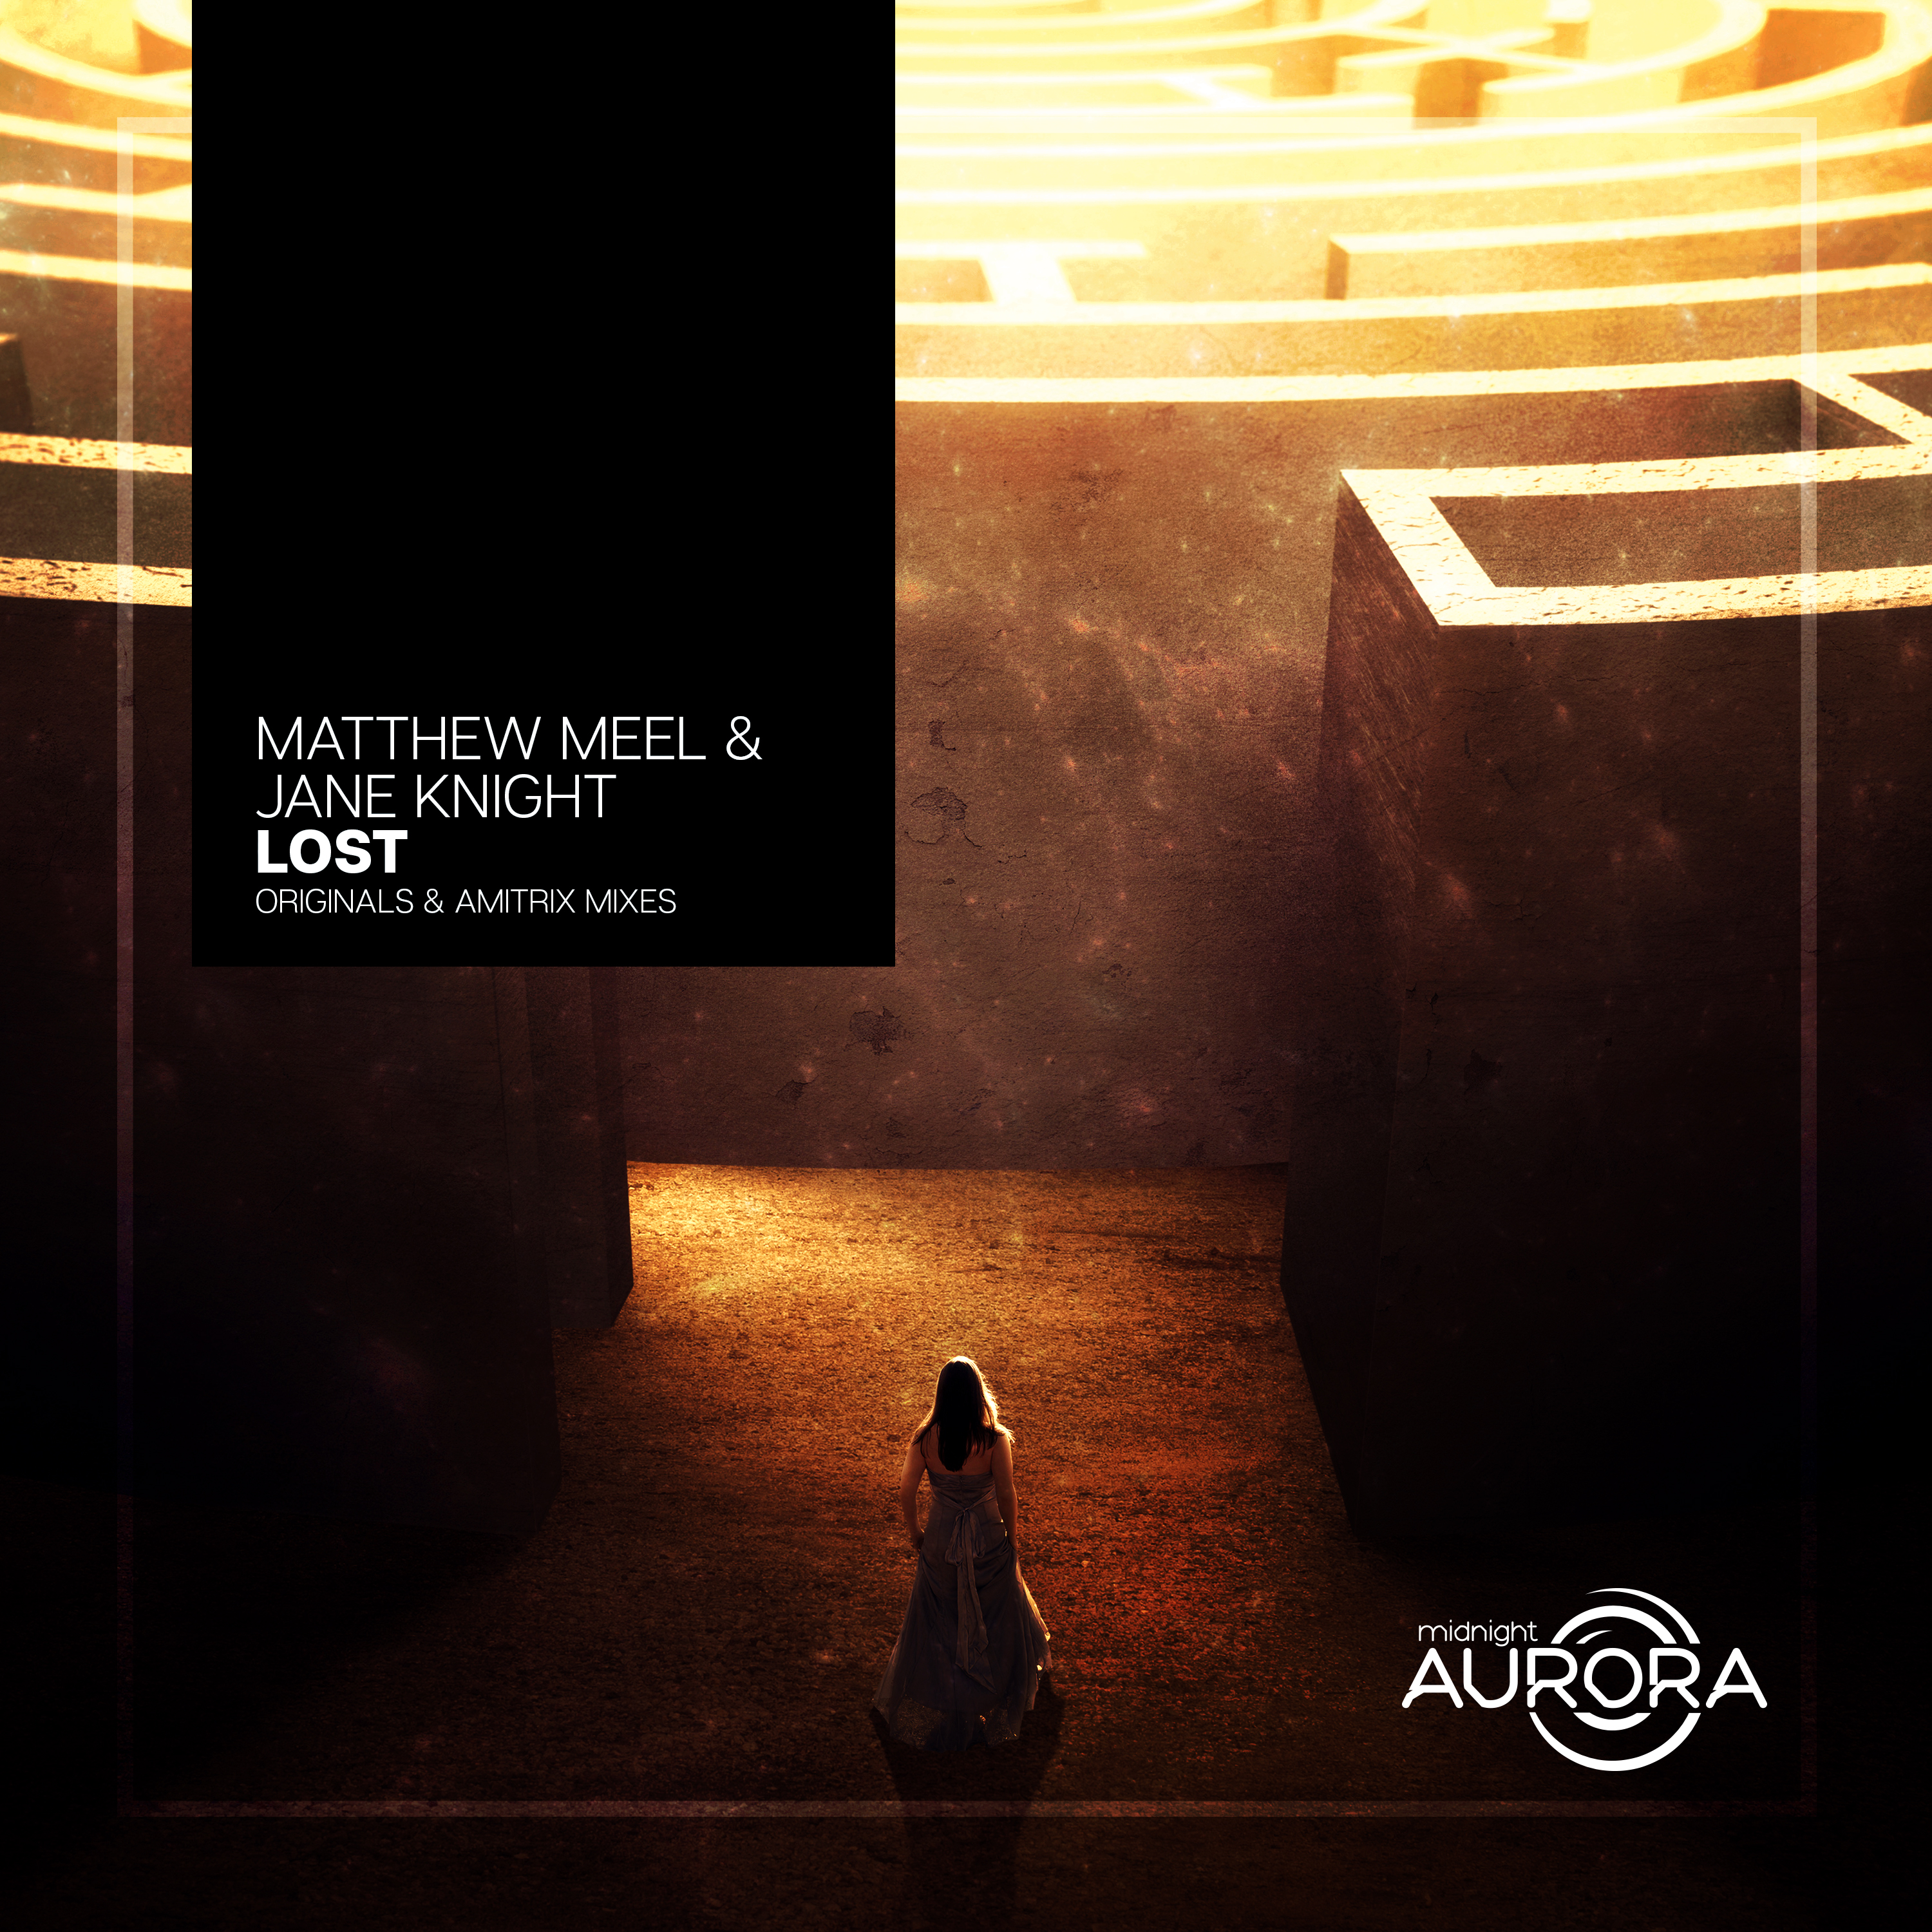 Matthew Meel & Jane Knight - Lost (Amitrix Another World Remix)